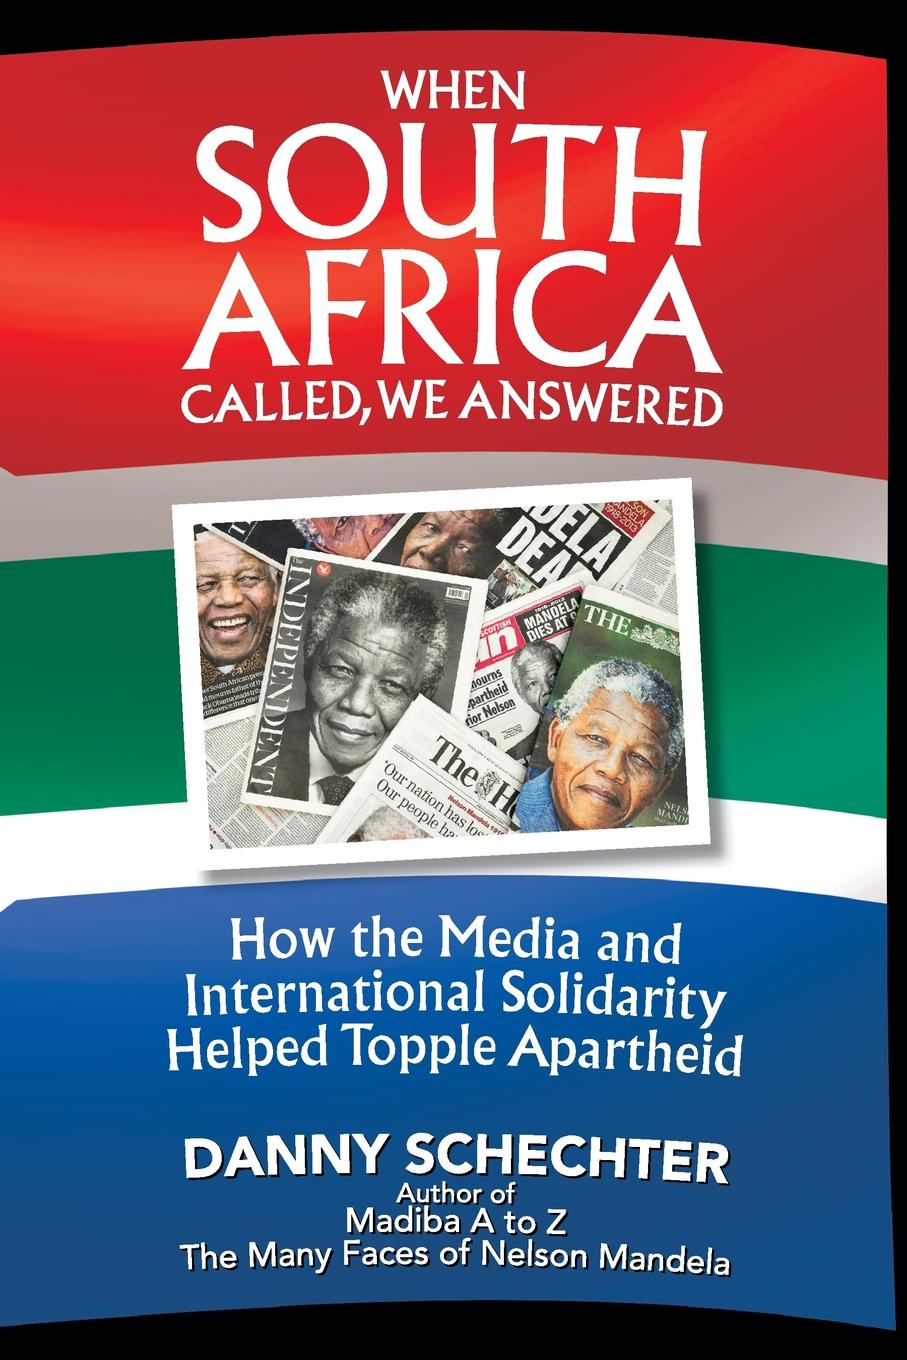 Danny Schechter When South Africa Called, We Answered. How the Media and International Solidarity Helped Topple Apartheid o loughlin ben war and media